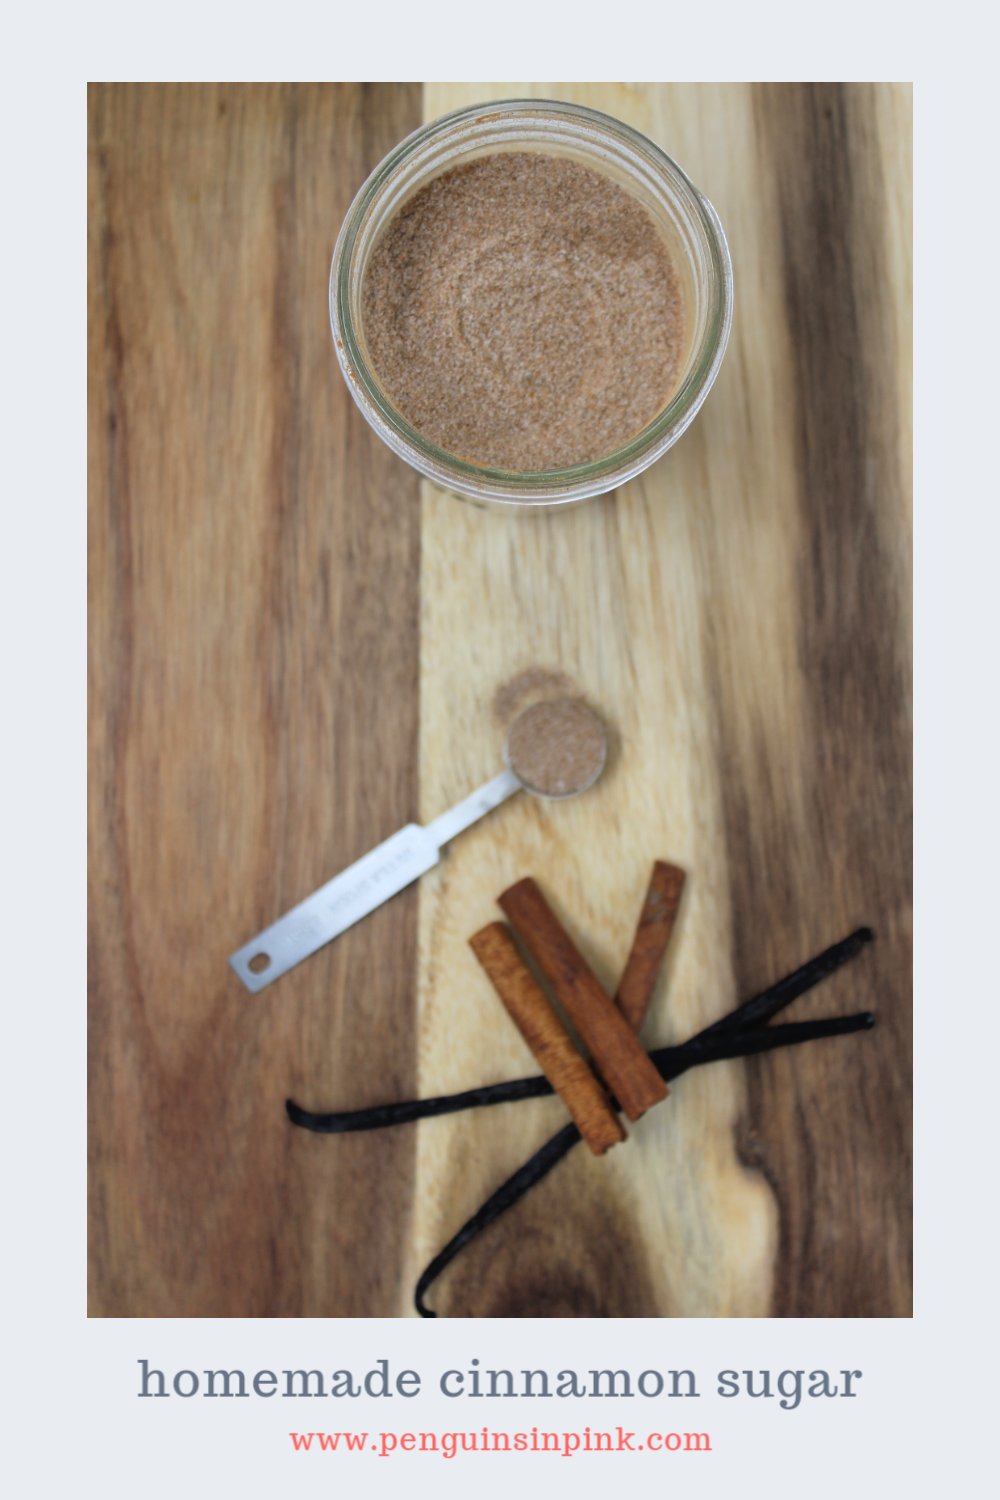 Kick up the flavor of everything from coffee to toast and oatmeal with this flavorful, homemade version of cinnamon sugar seasoning. It is a mix of vanilla sugar and cinnamon.